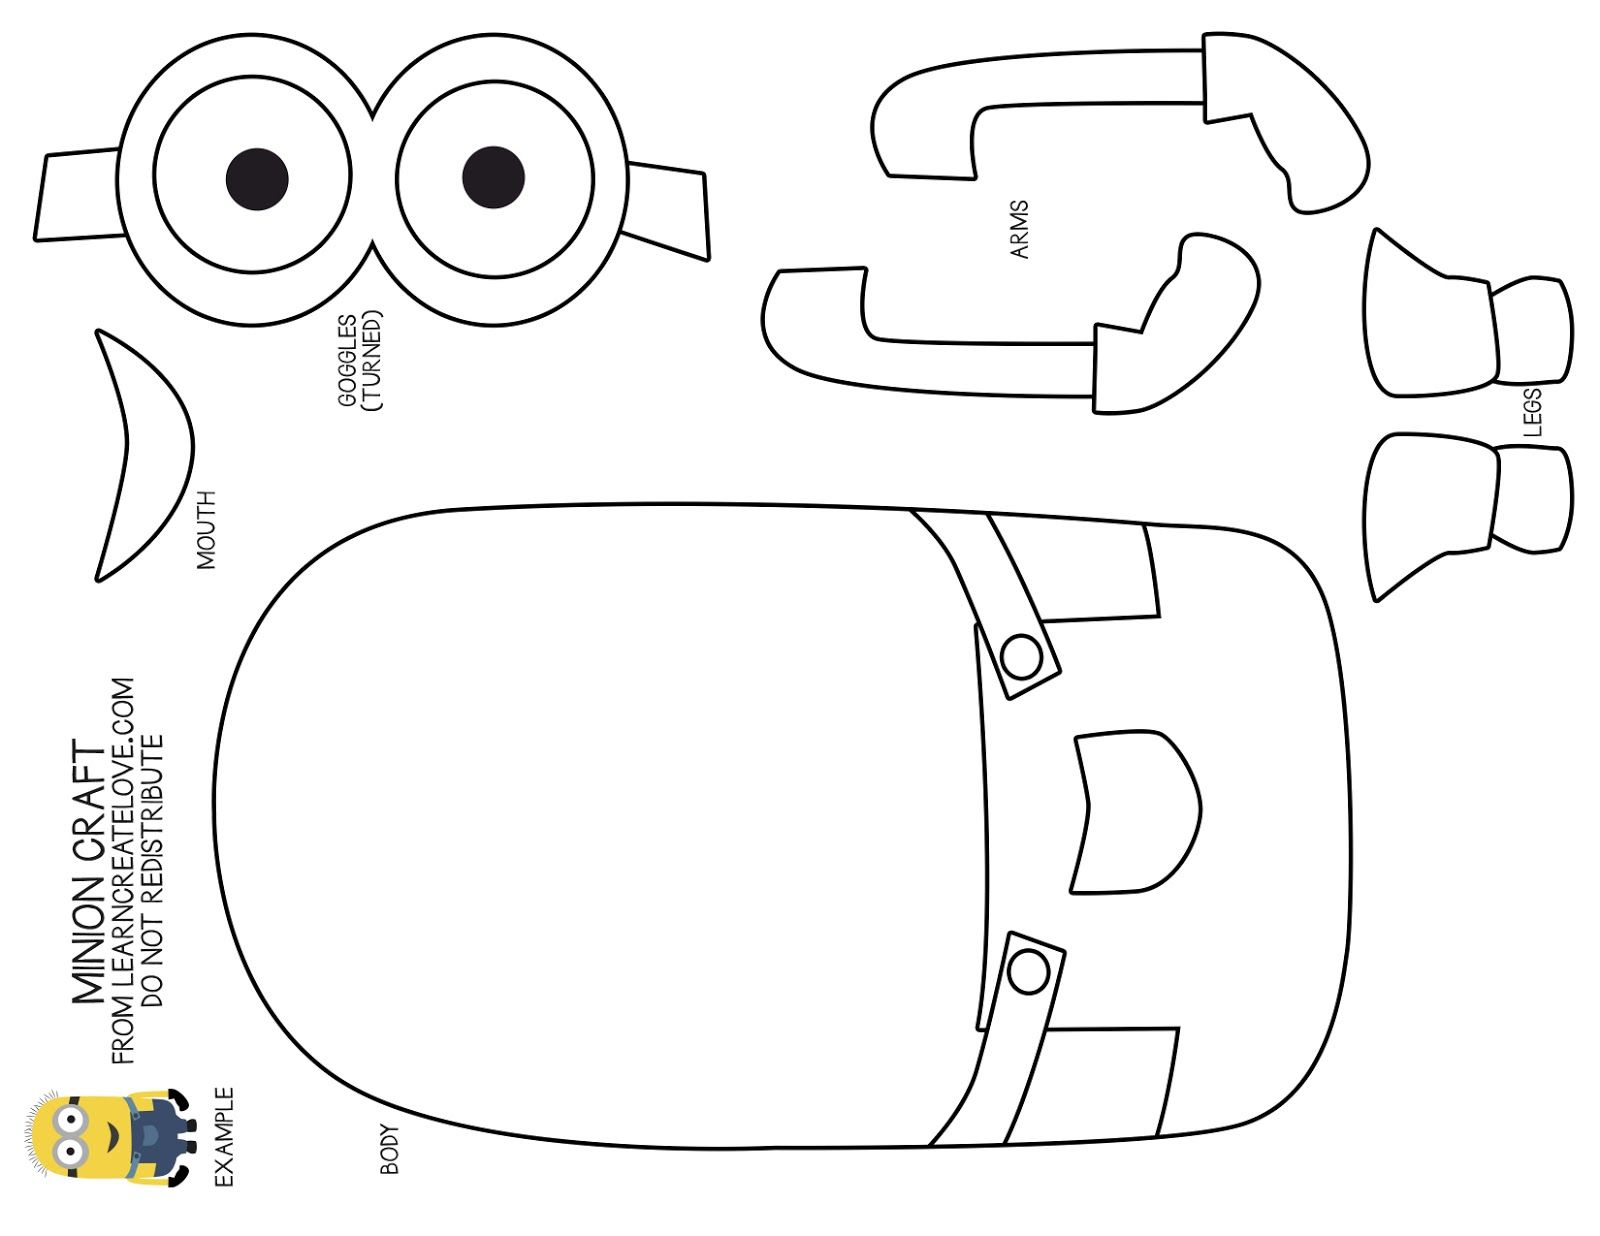 minion coloring pages free large images - Minion Coloring Pages